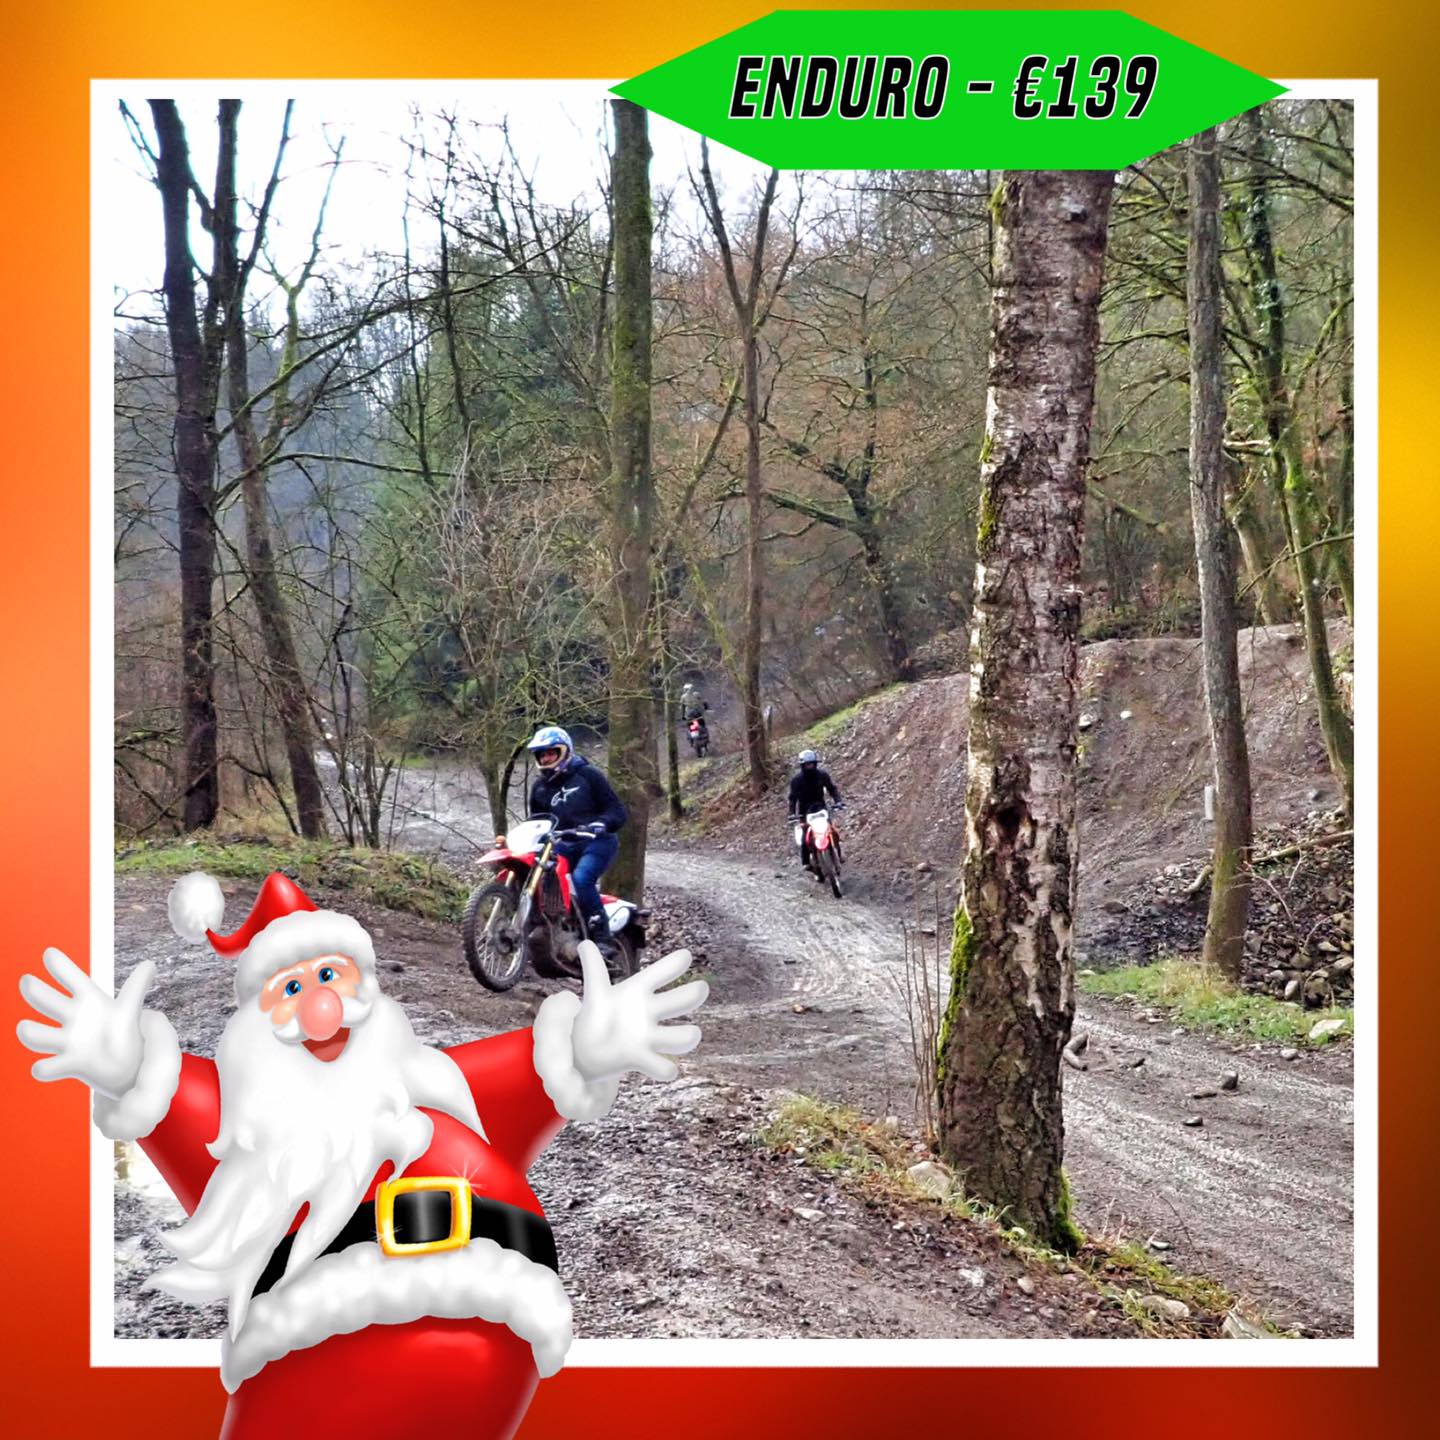 Kerst-initiaties Bilstain Endurofun 18